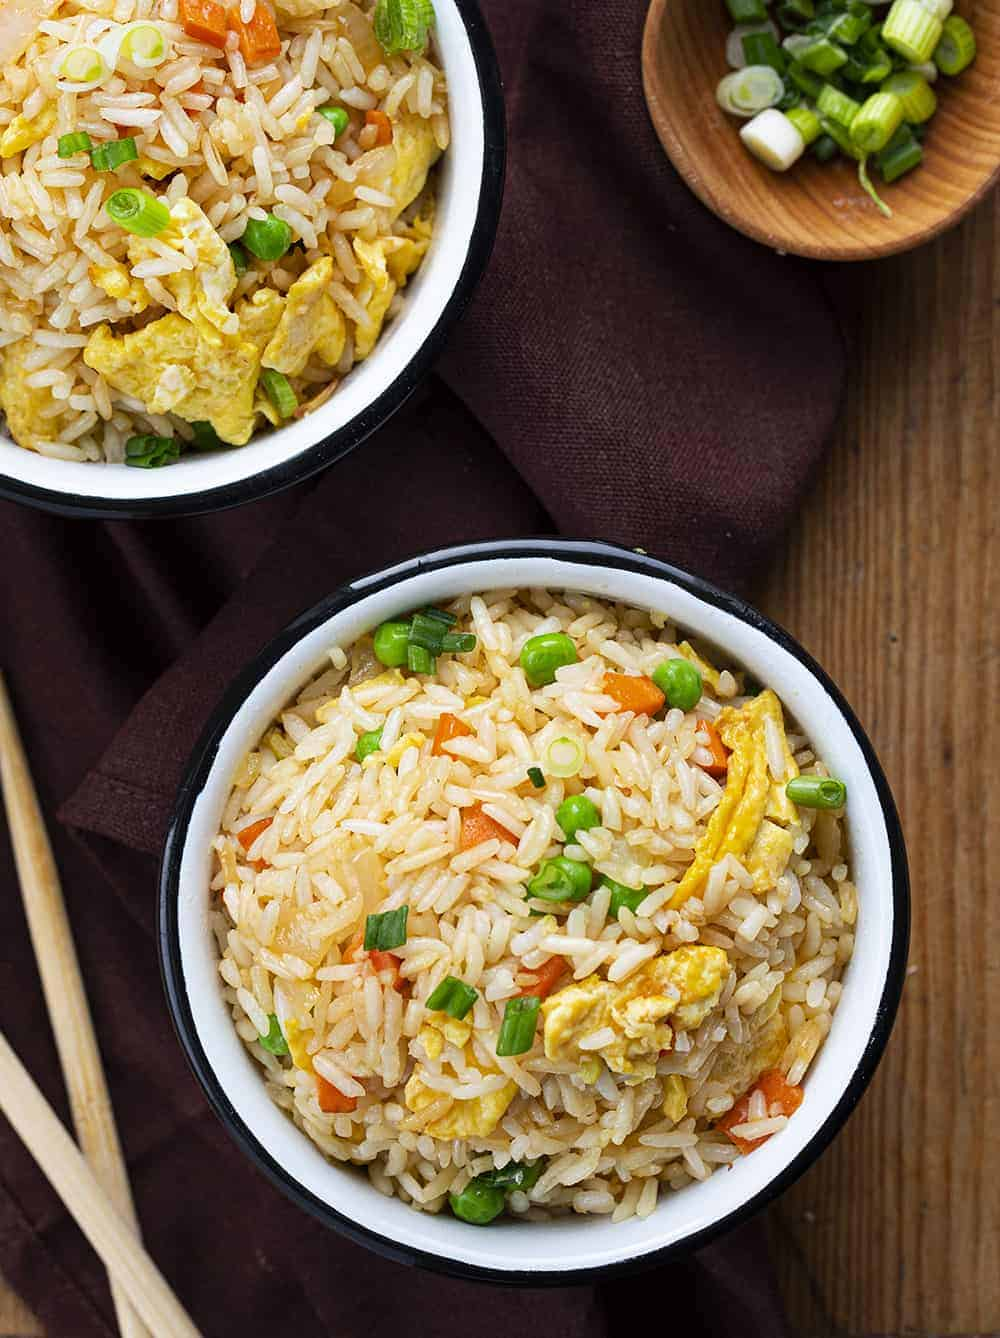 Bowls of Fried Rice